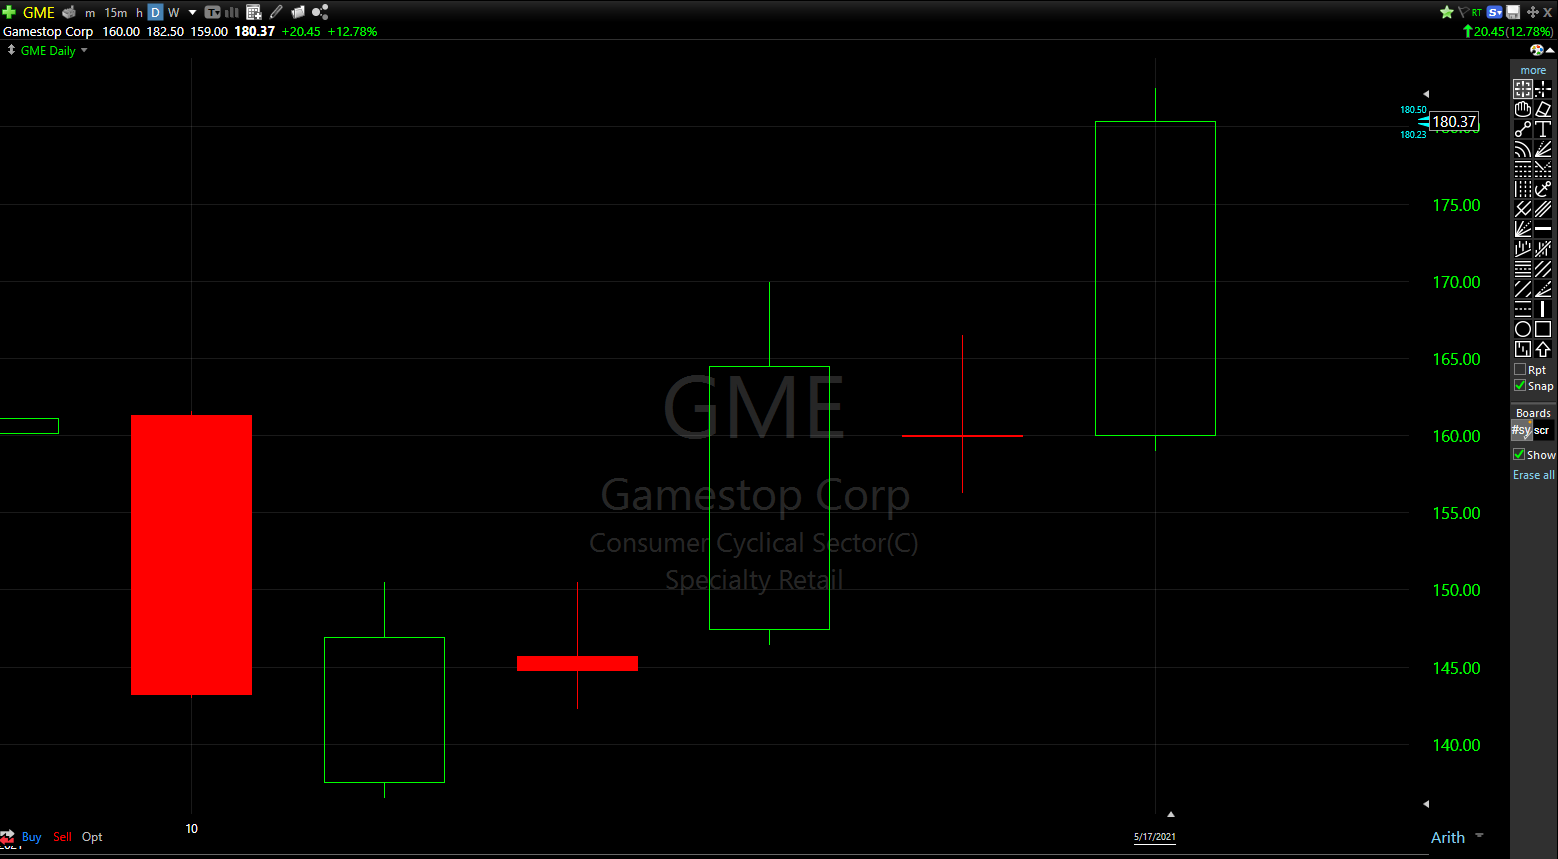 GME shares traded above last week's high of $166.47/share, creating a buy signal this morning.